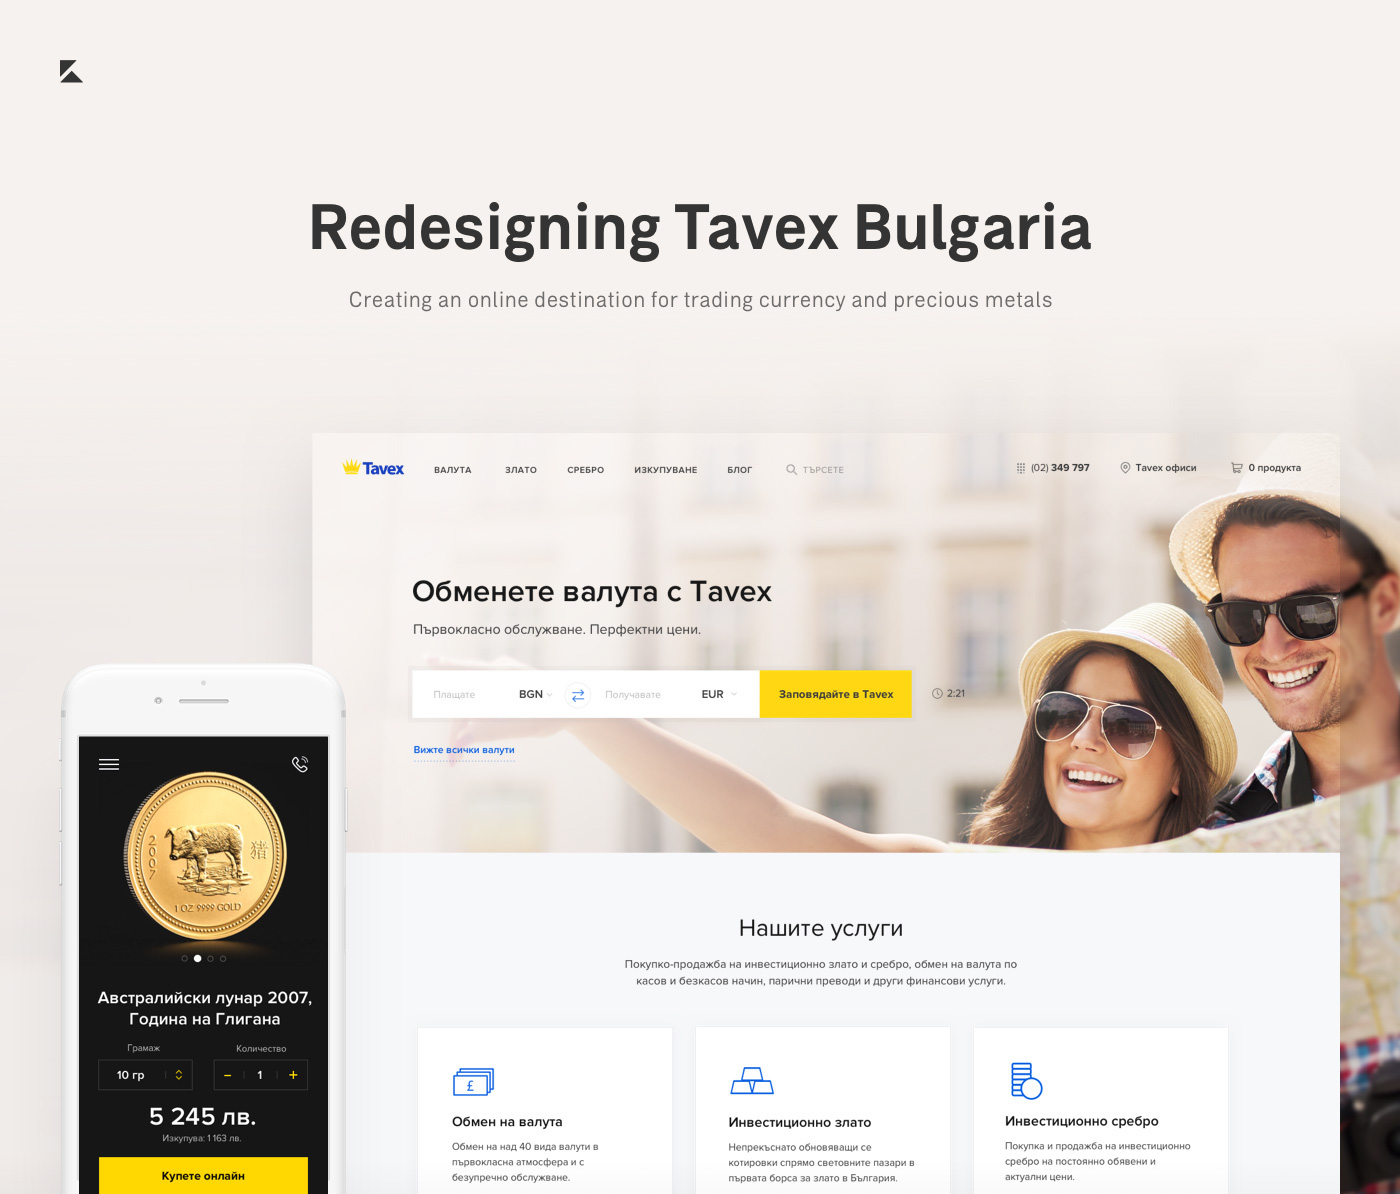 finance,gold,silver,Ecommerce,bulgaria,currency,payment,Investment